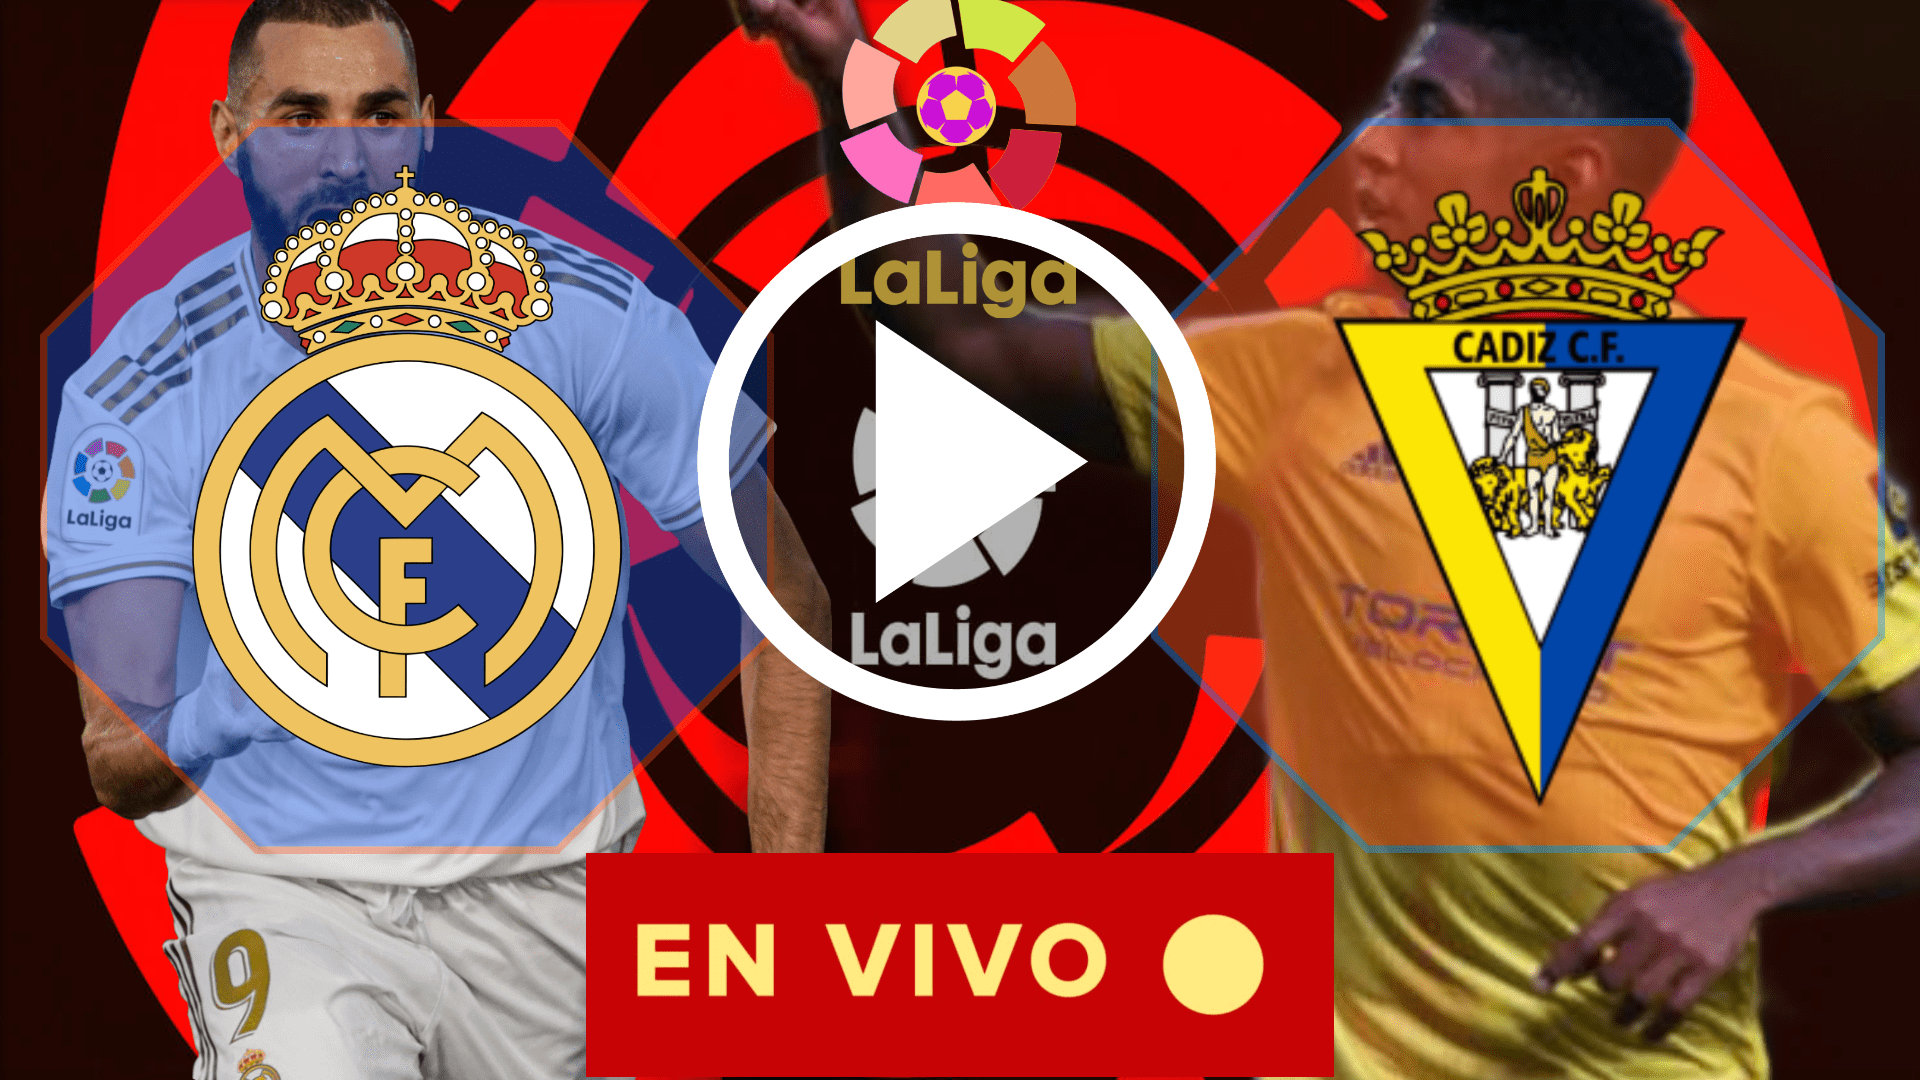 EN CORTO MIRAR EN VIVO REAL MADRID VS CADIZ EN VIVO GRATIS